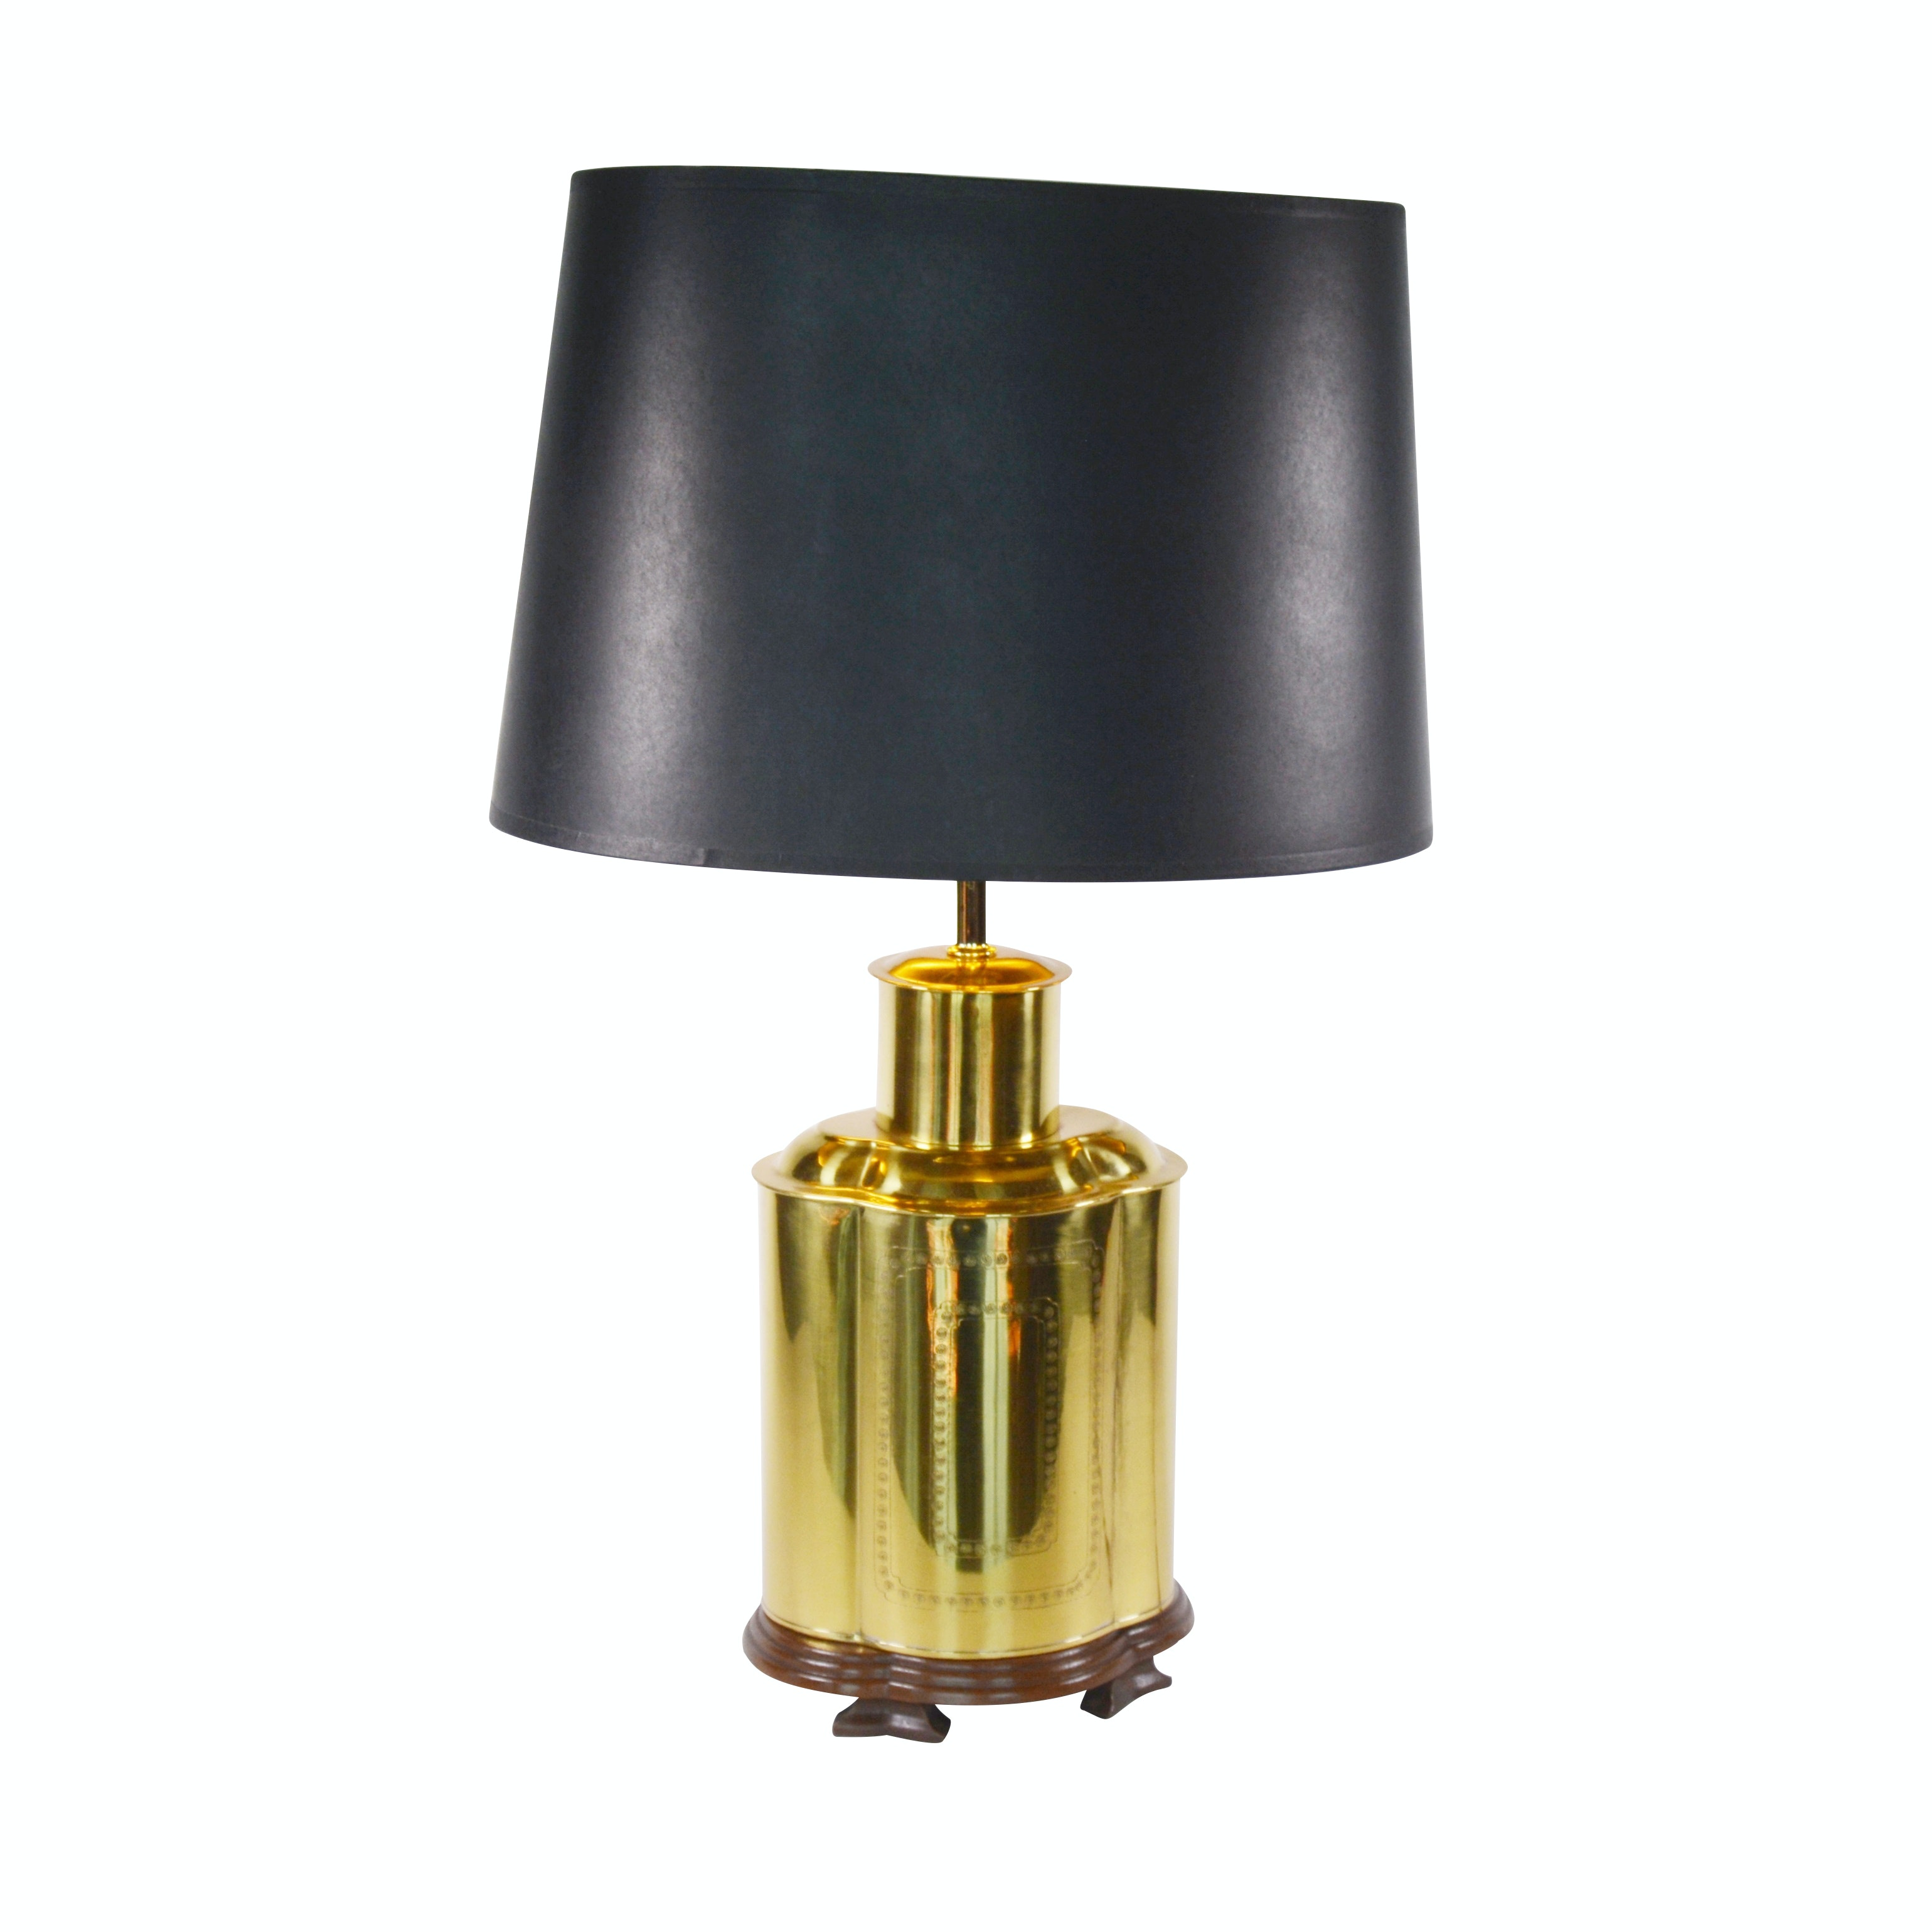 Decorative Brass Table Lamp with Oval Shade